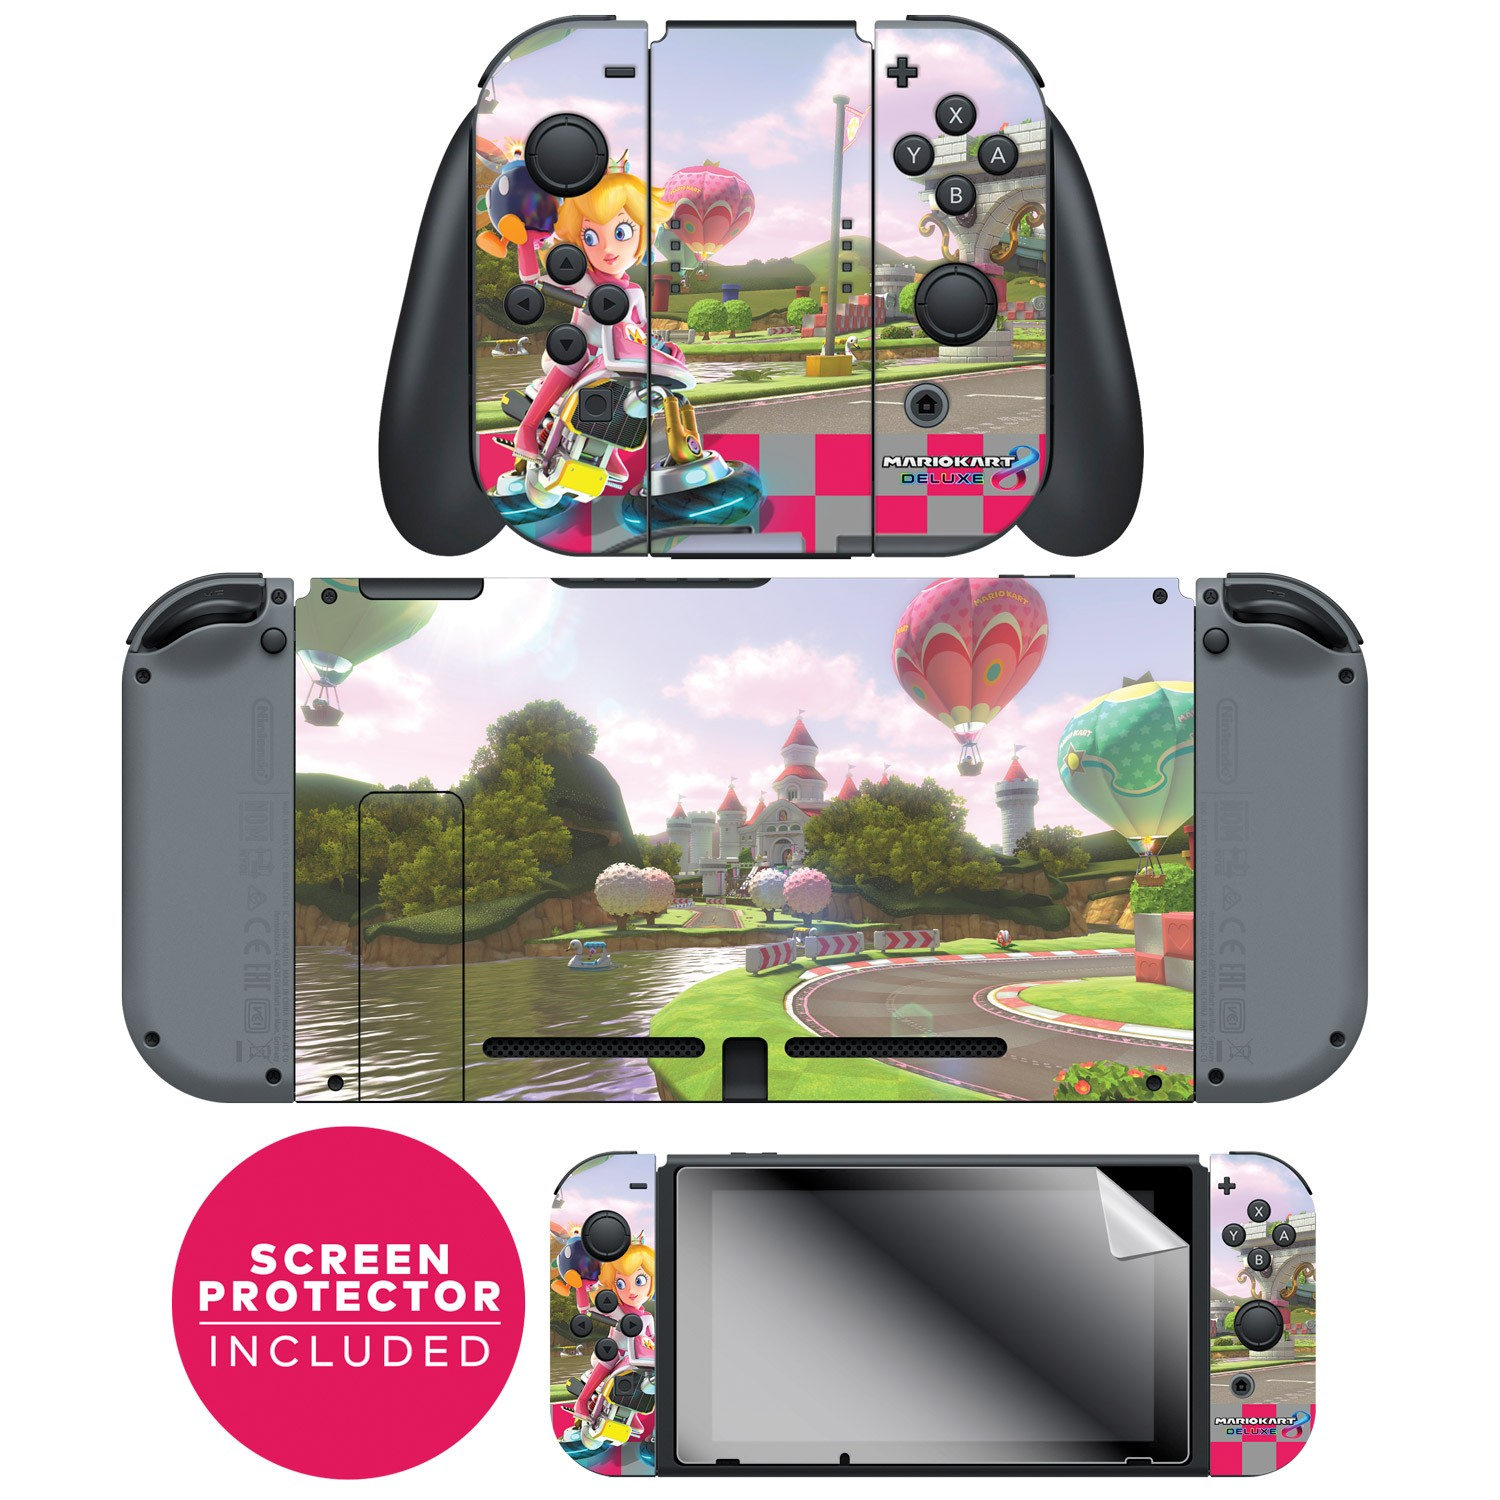 "Nintendo Switch™ Skin & Screen Protector Set Officially Licensed by Nintendo - Super Mario™ Kart 8: ""Princess Peach's Castle"" Joy-Con & Console Set"